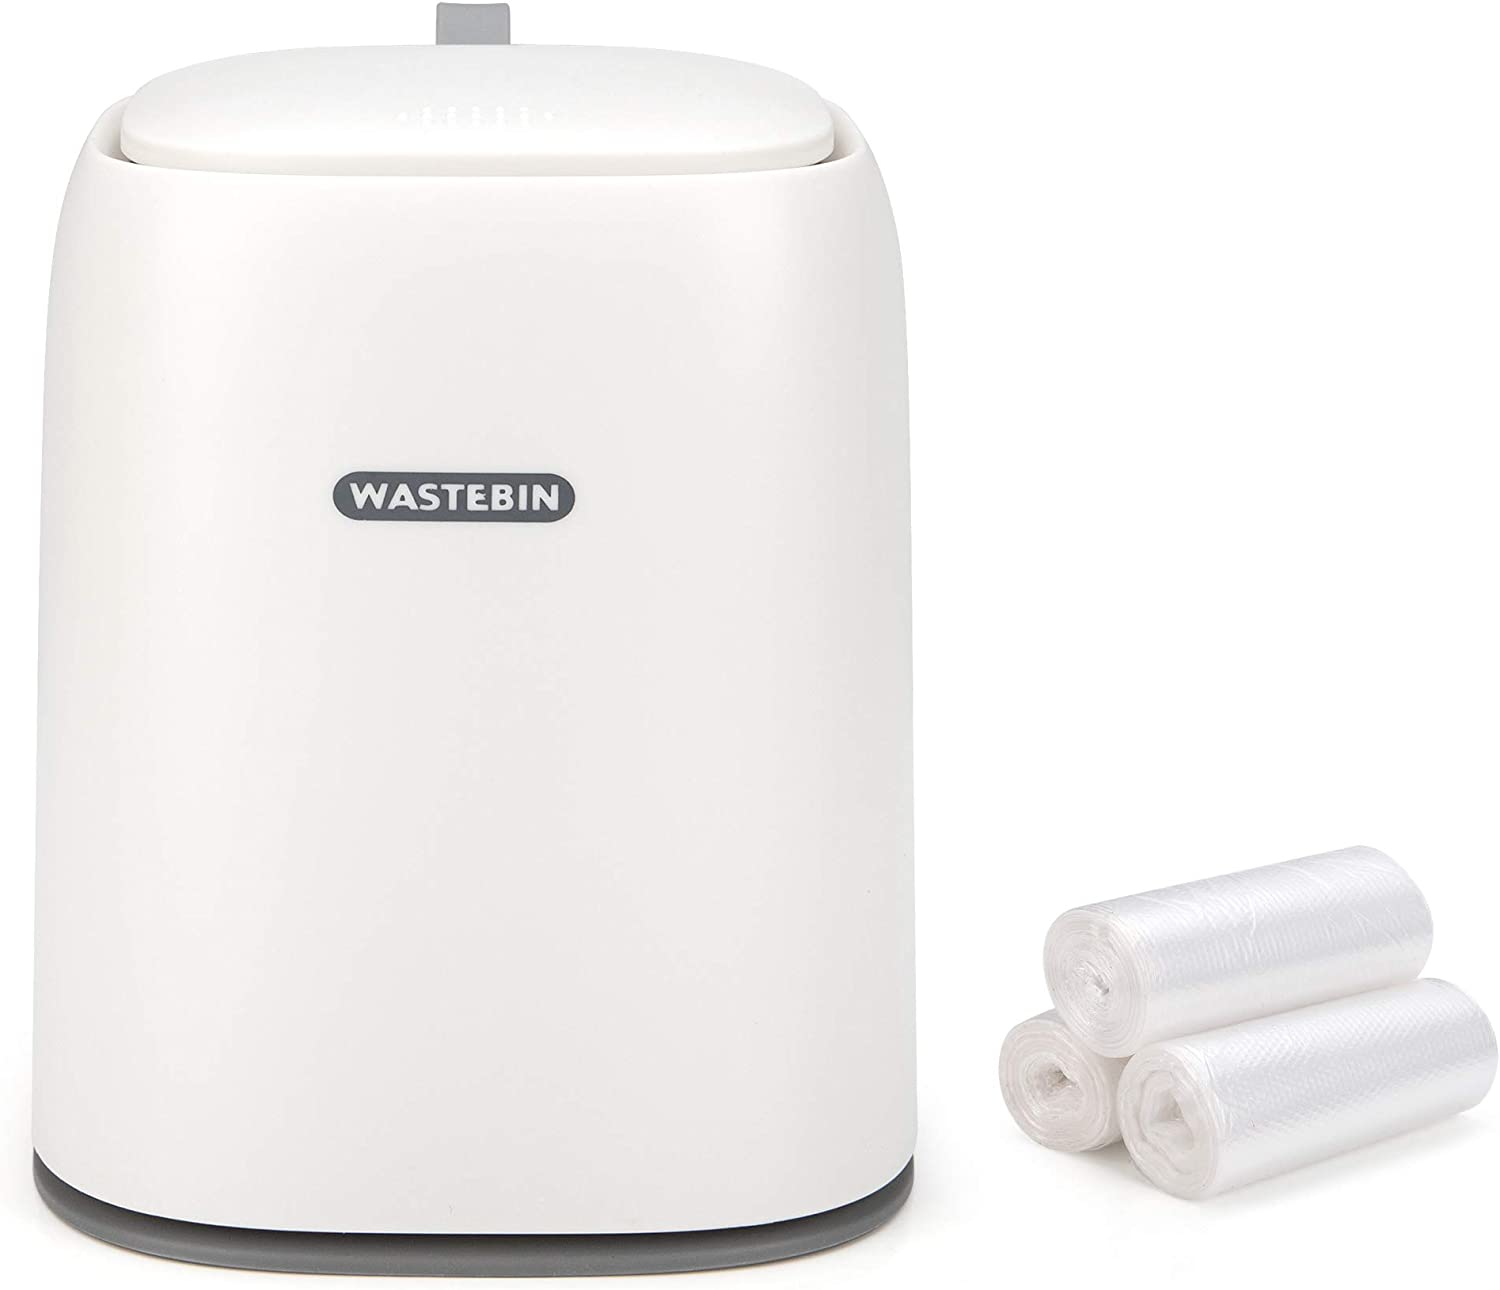 Mini Countertop Trash Can with 3 Trash Bags, Modern Waste Can with Press Type Lid, 1.5 L / 0.40 Gal Wastebasket Trash Can Dispenser, Mini Bin for Coffee Table, Bathroom Vanity top (White)